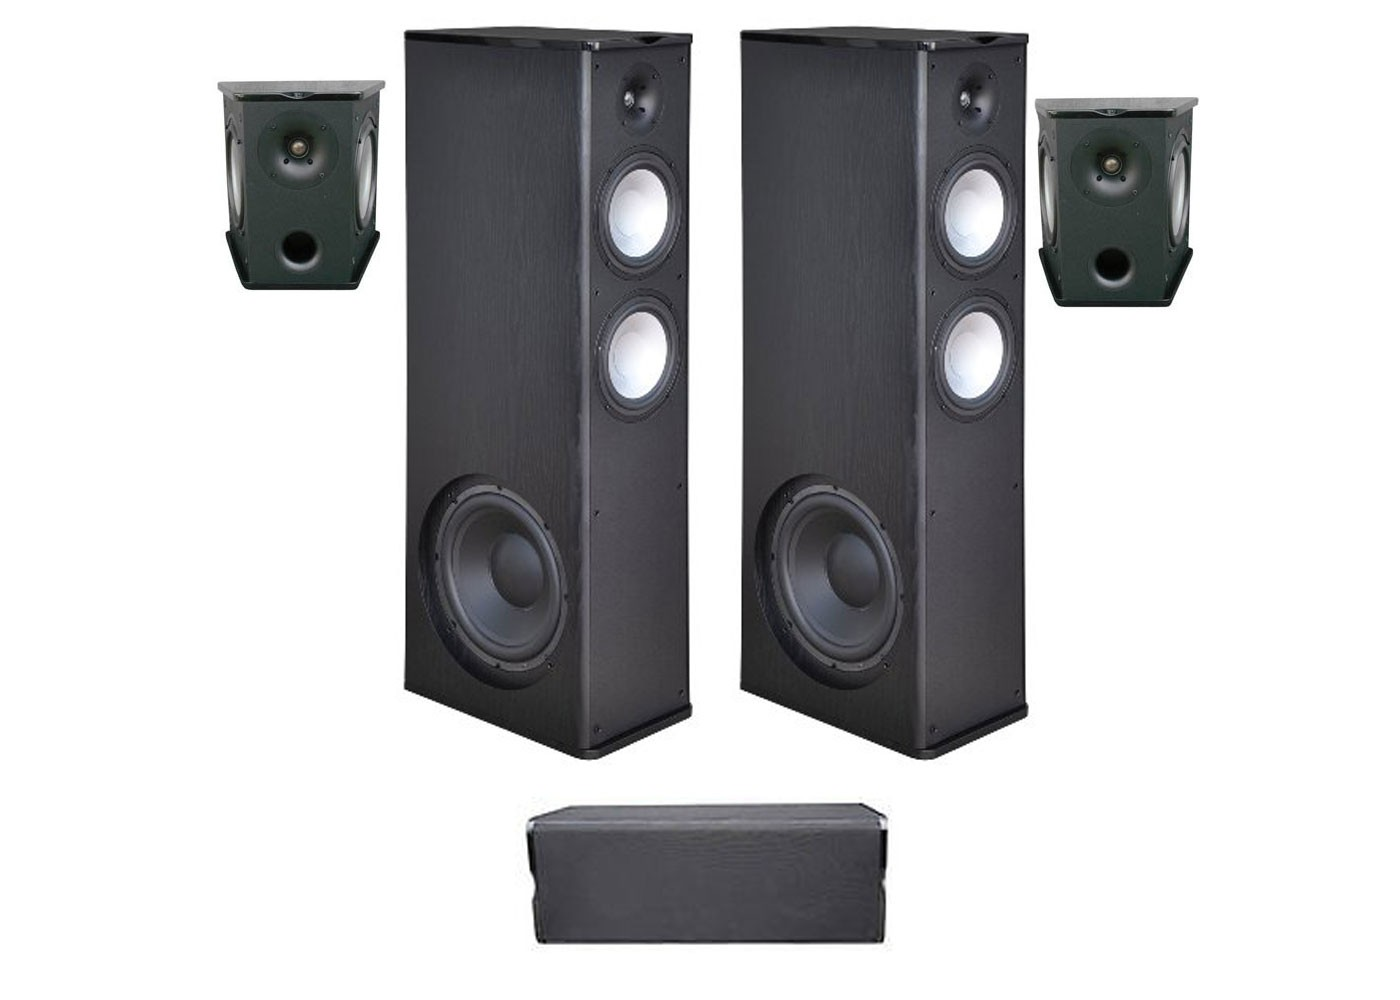 Premier Acoustic 5.0 Home Theater System Bundle with 2 PA-8.12 Tower Speakers, 2 PA-8S Surrounds, and 1 PA-8C Center Channel Speaker